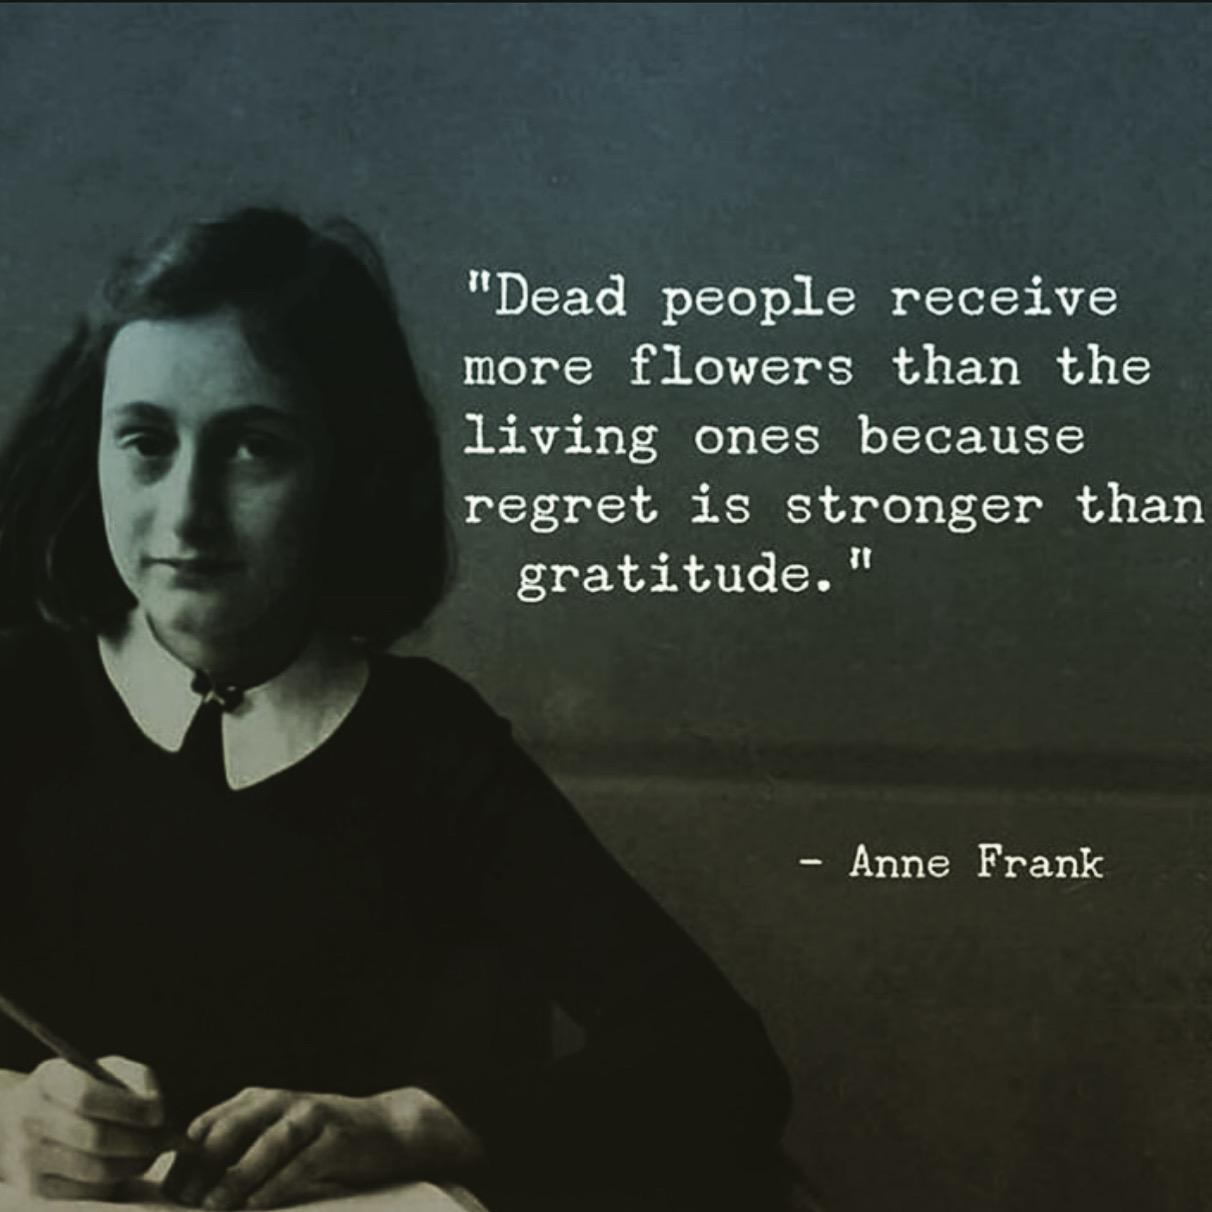 """Dead people receive more flowers than the living ones because regret is stronger than gratitude."" -Anne Frank [1212×1212]"